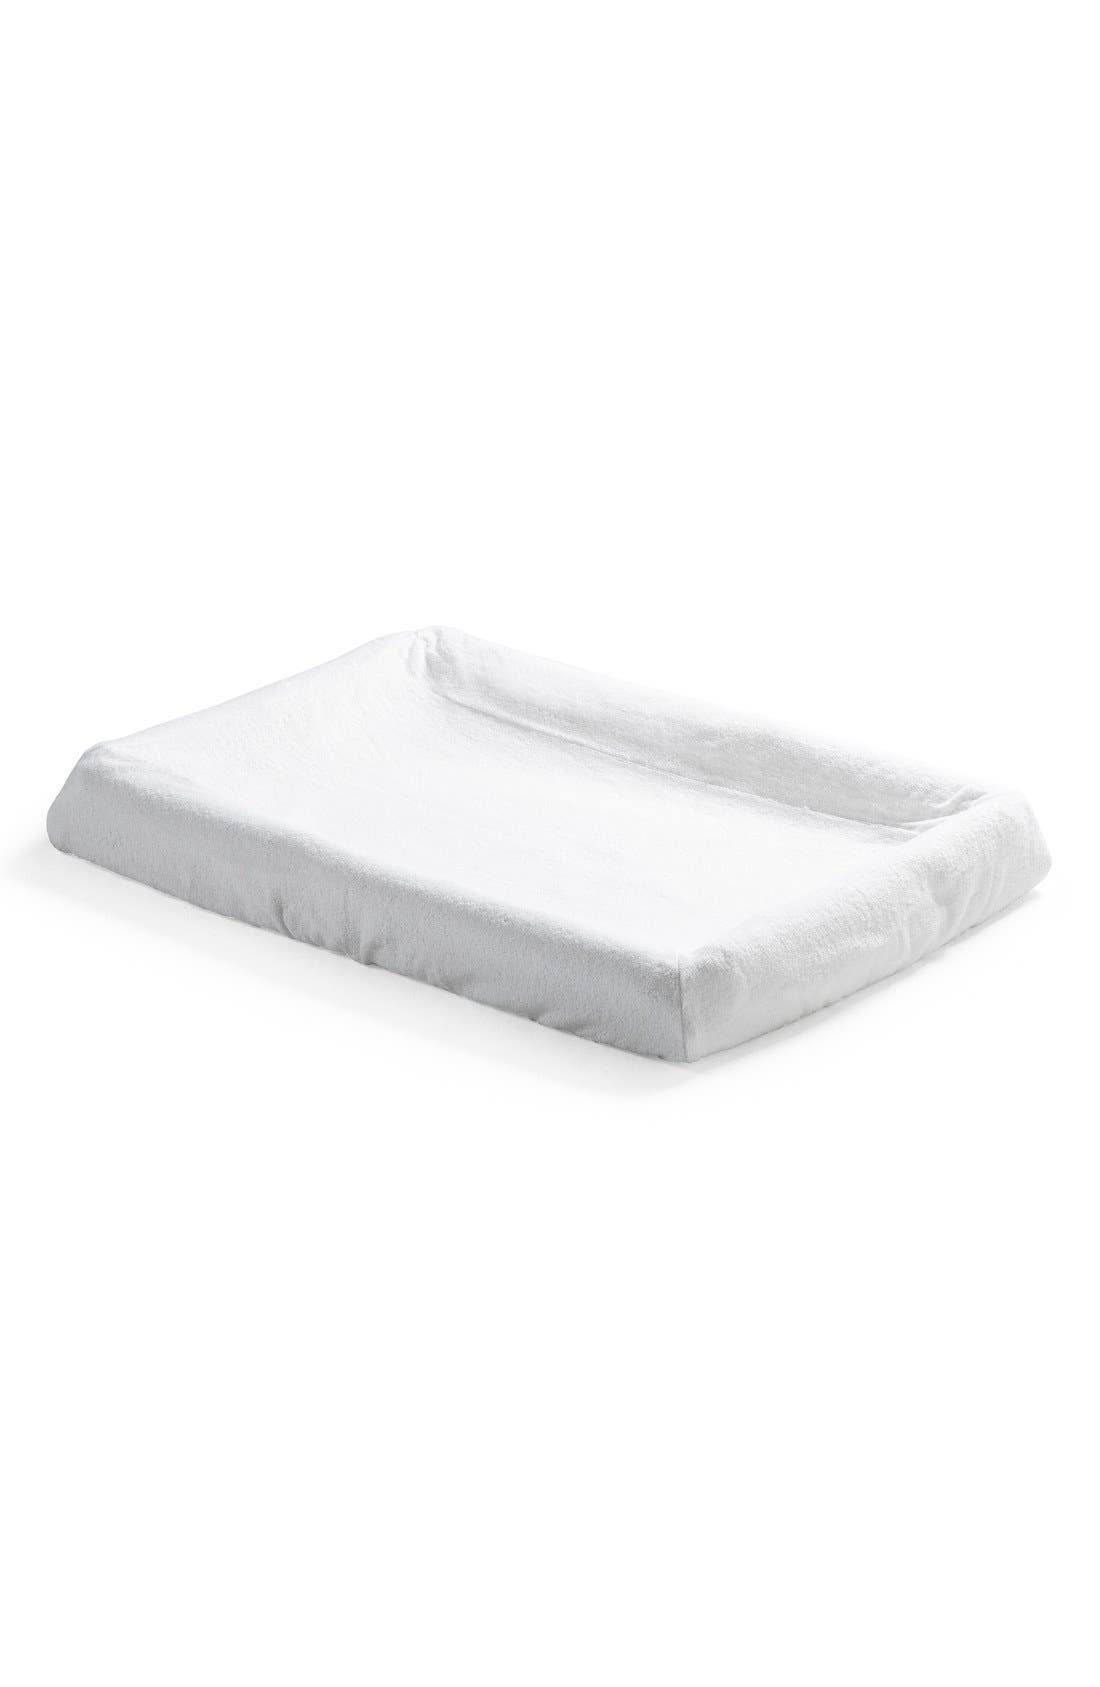 'Home<sup>™</sup>' Changer Mattress Cover,                         Main,                         color, White